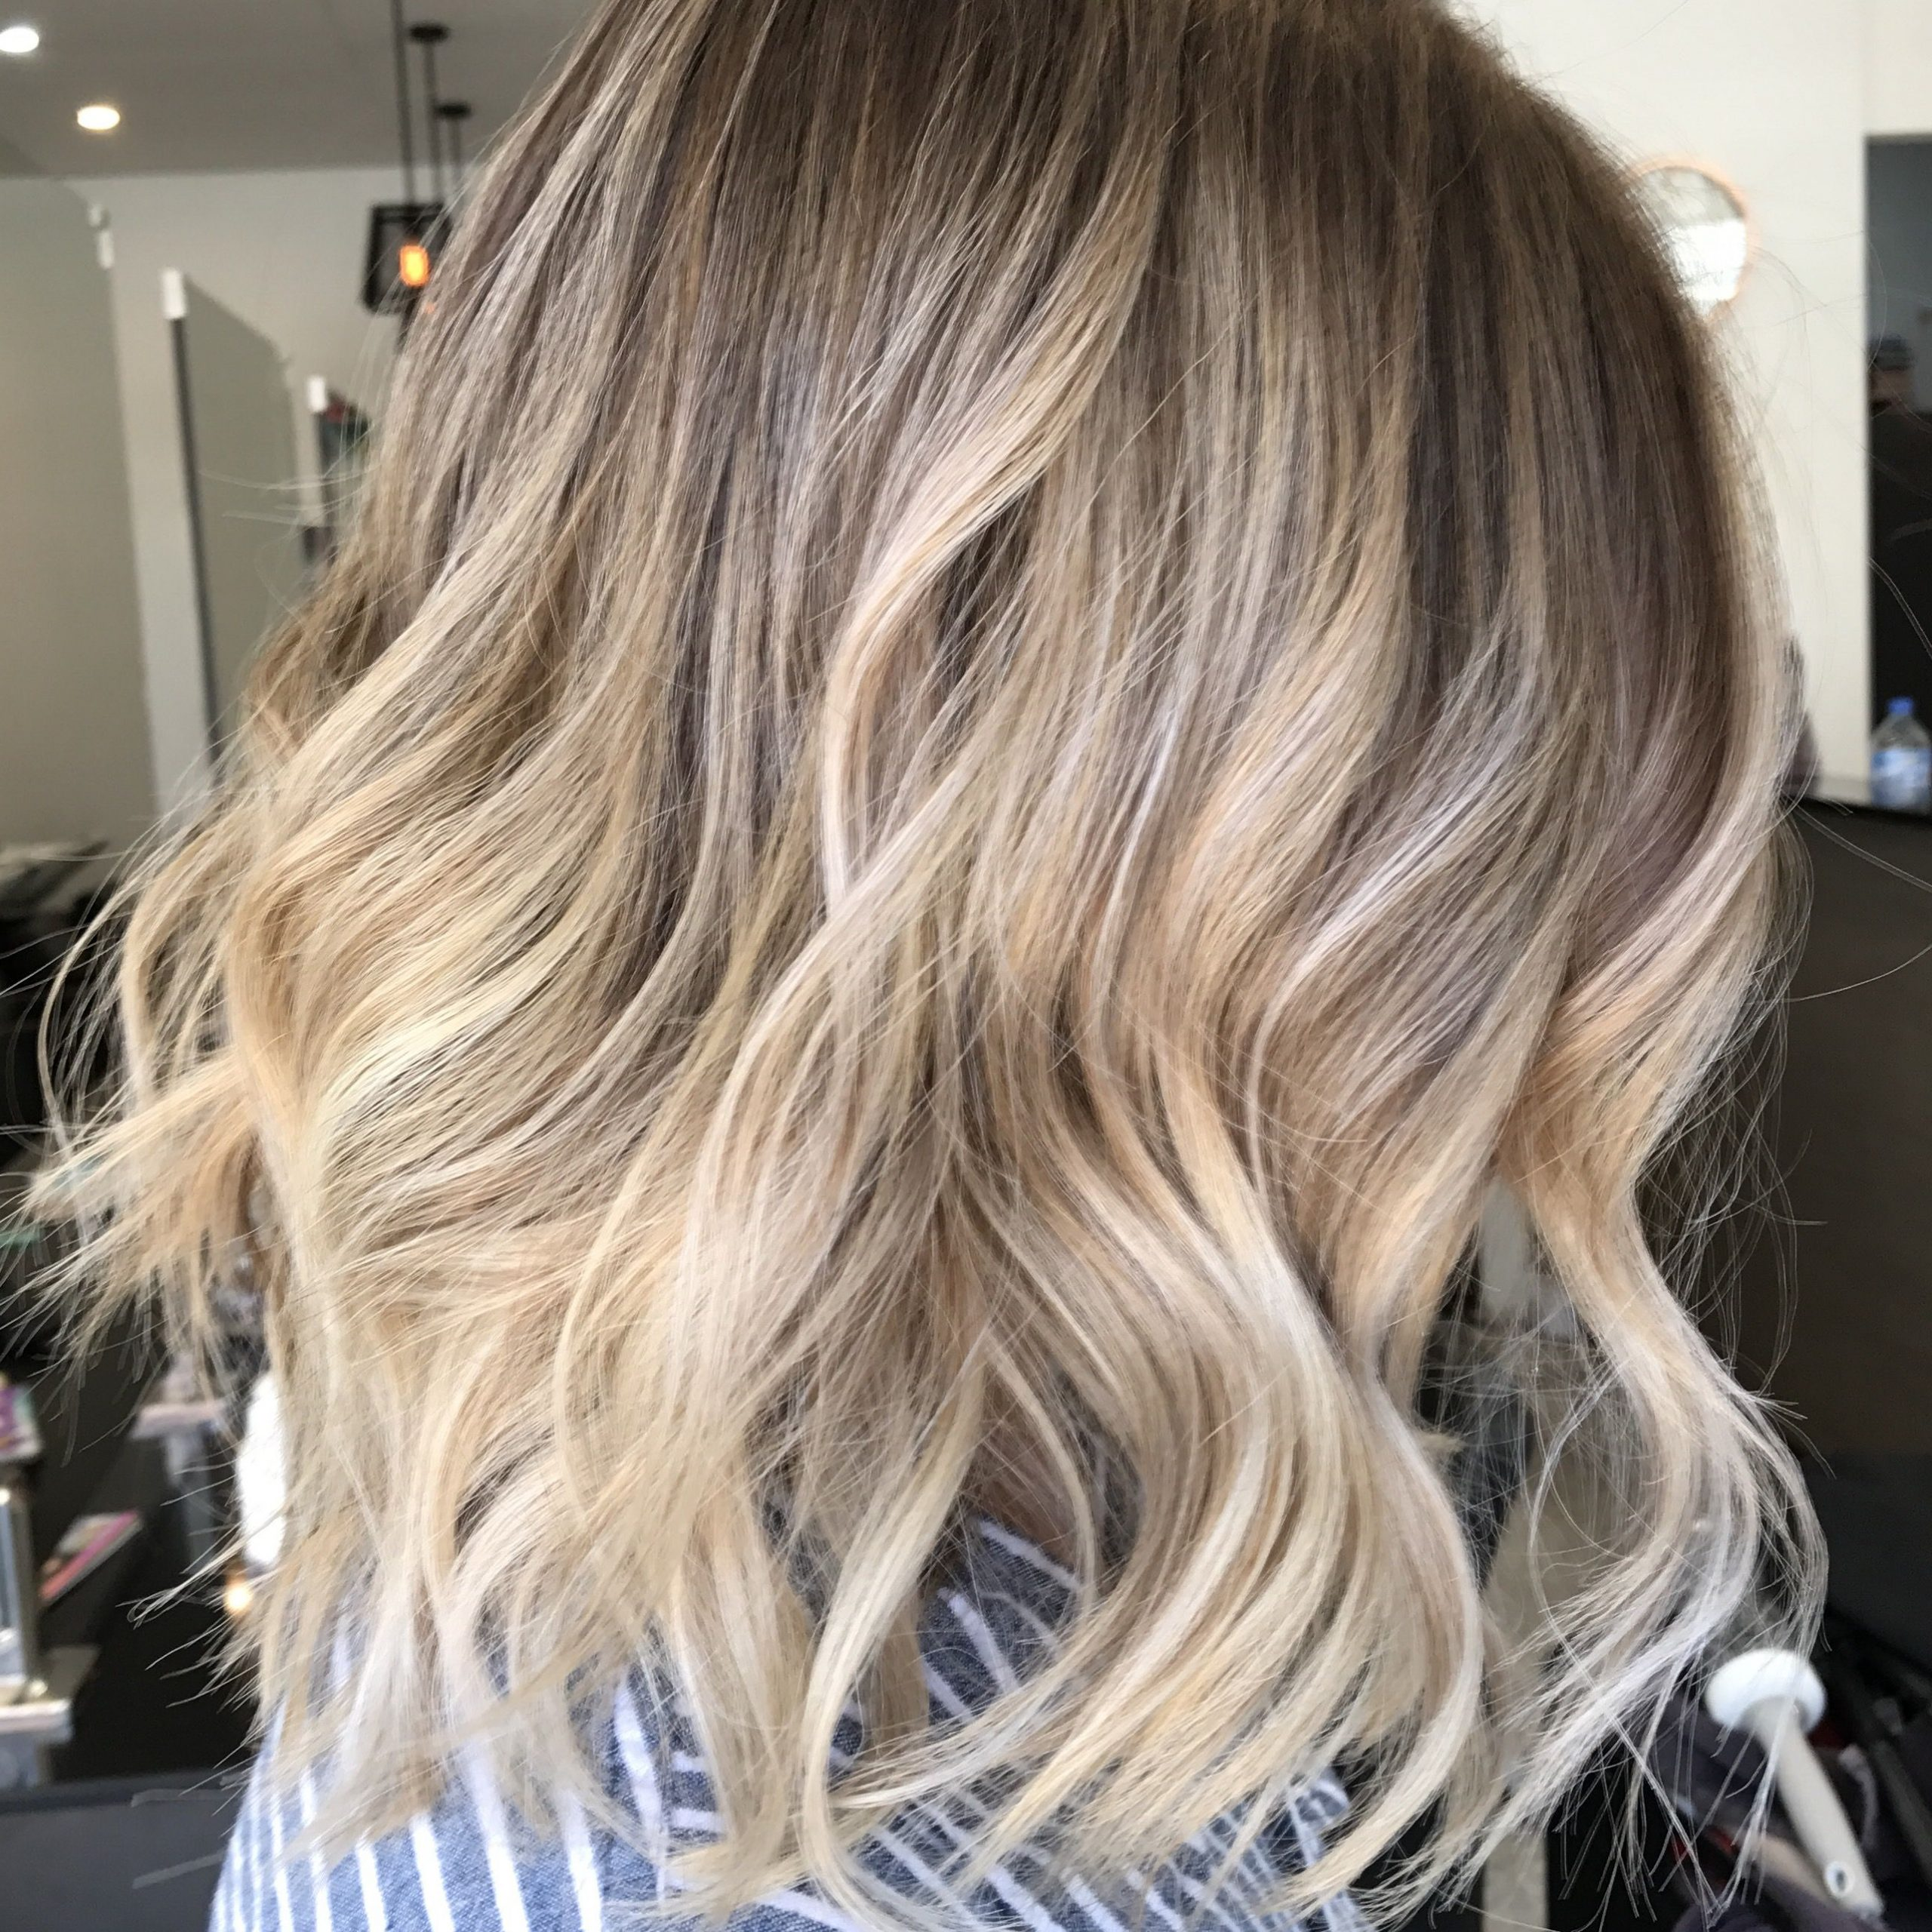 Fashionable Textured Bronde Bob Hairstyles With Silver Balayage Within Lived In Hair Colour Blonde Bronde Brunette Golden Tones (View 6 of 20)